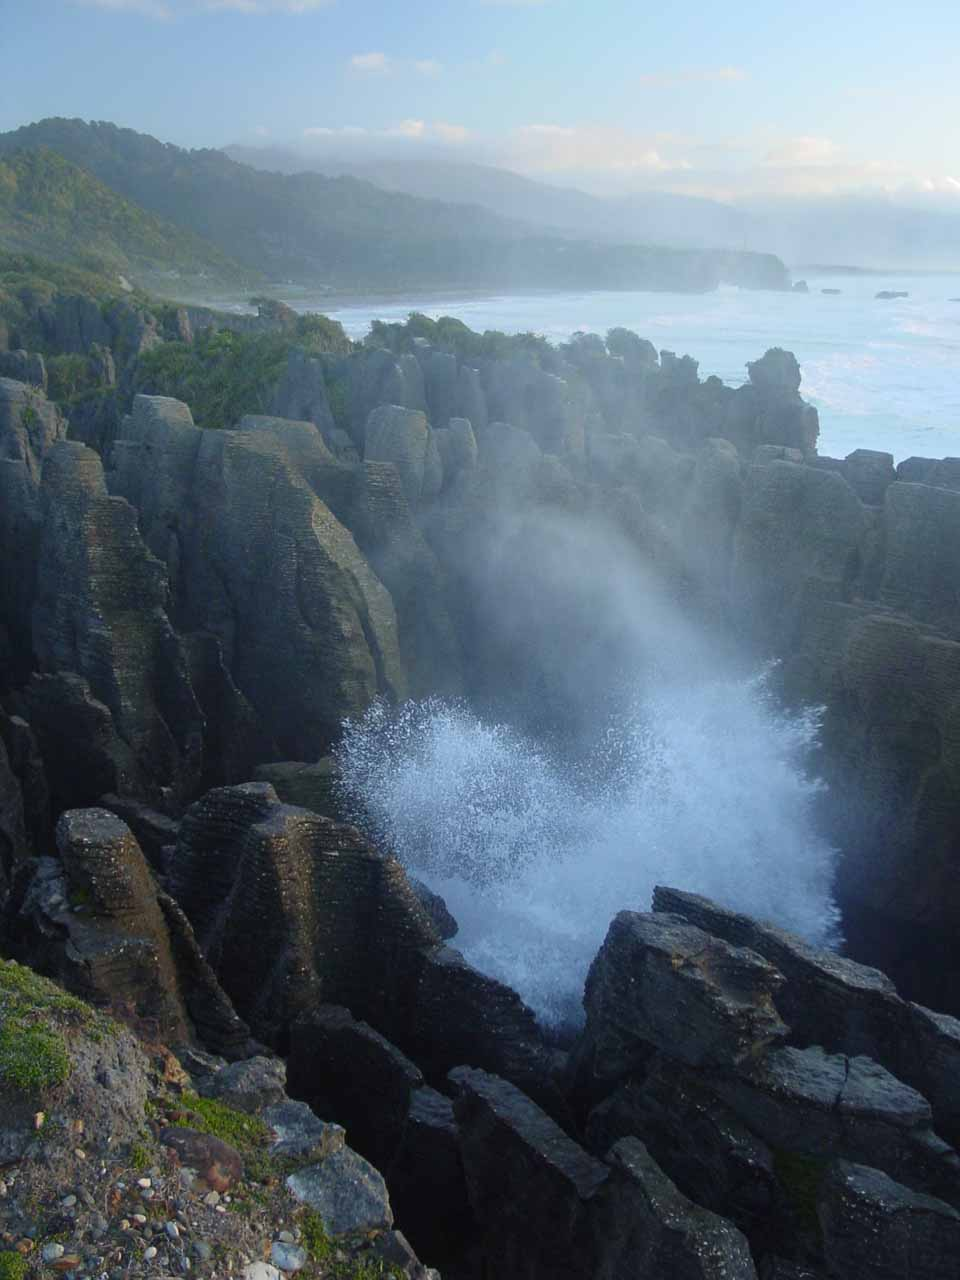 Putai Blowhole and the Pancake Rocks